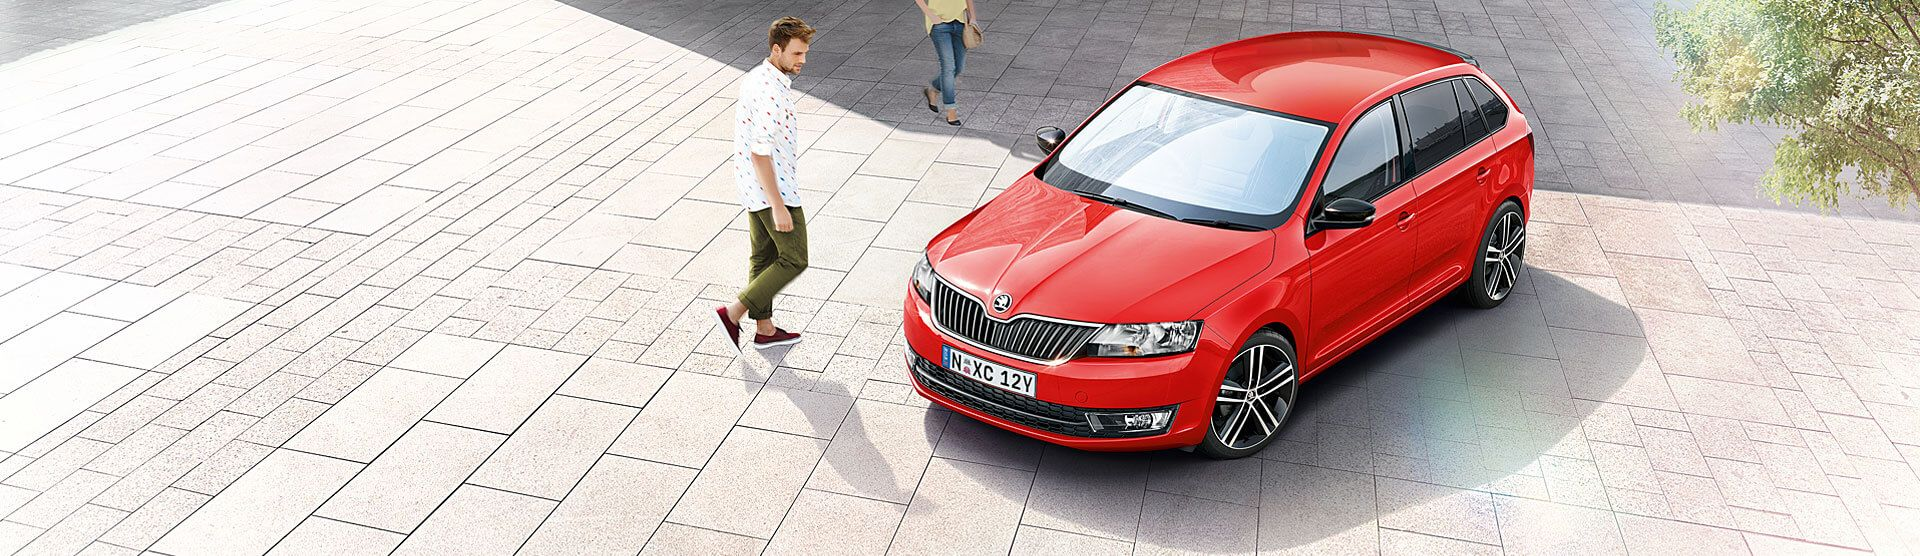 Skoda Rapid Spaceback Overview Top Banner